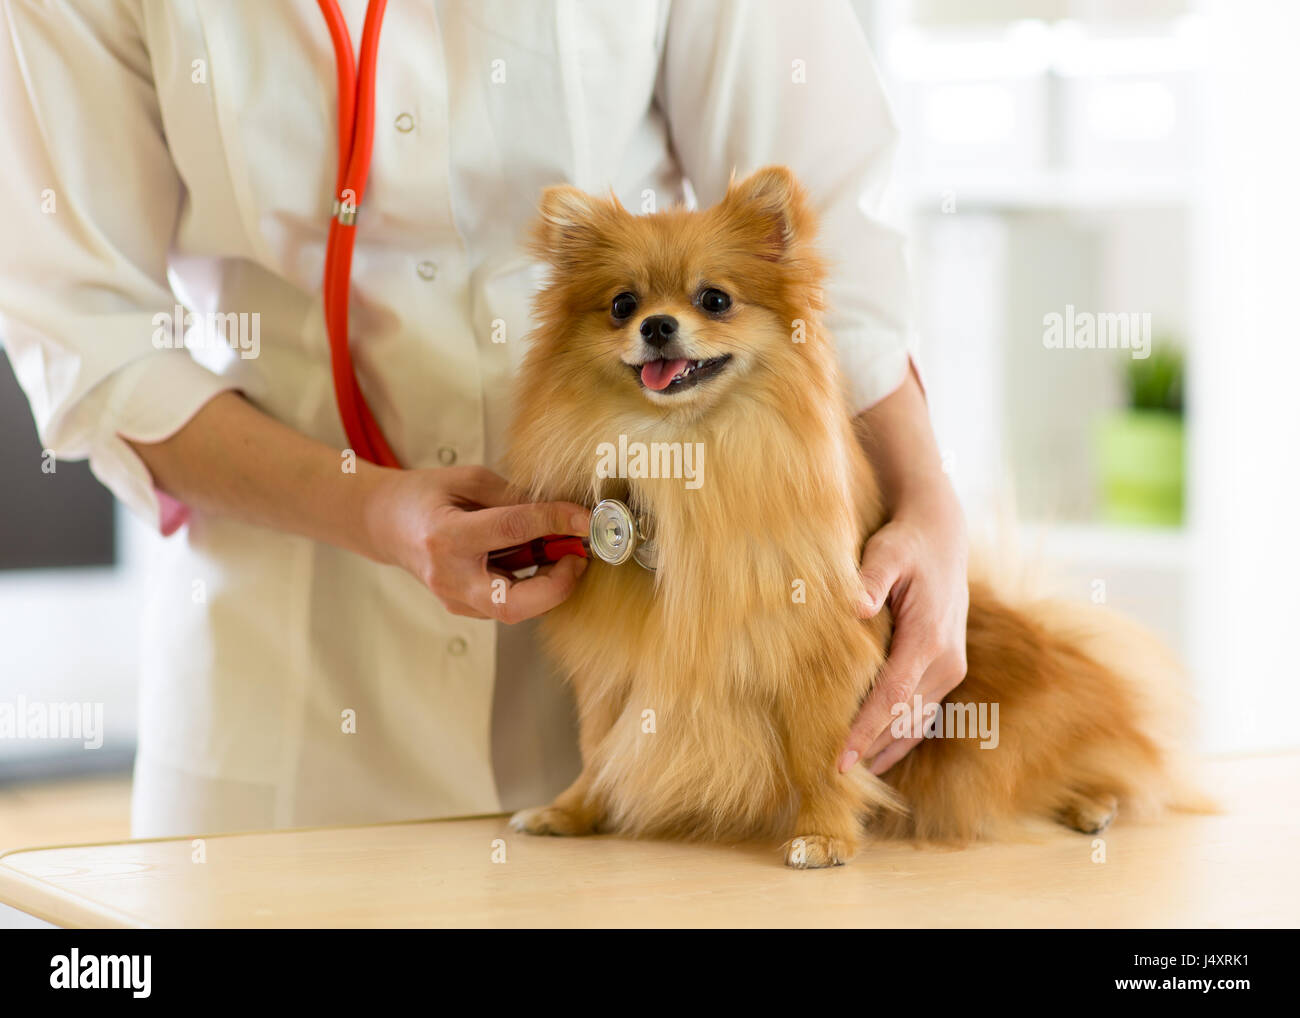 the vet examining the dog breeds Spitz with stethoscope in clinic - Stock Image